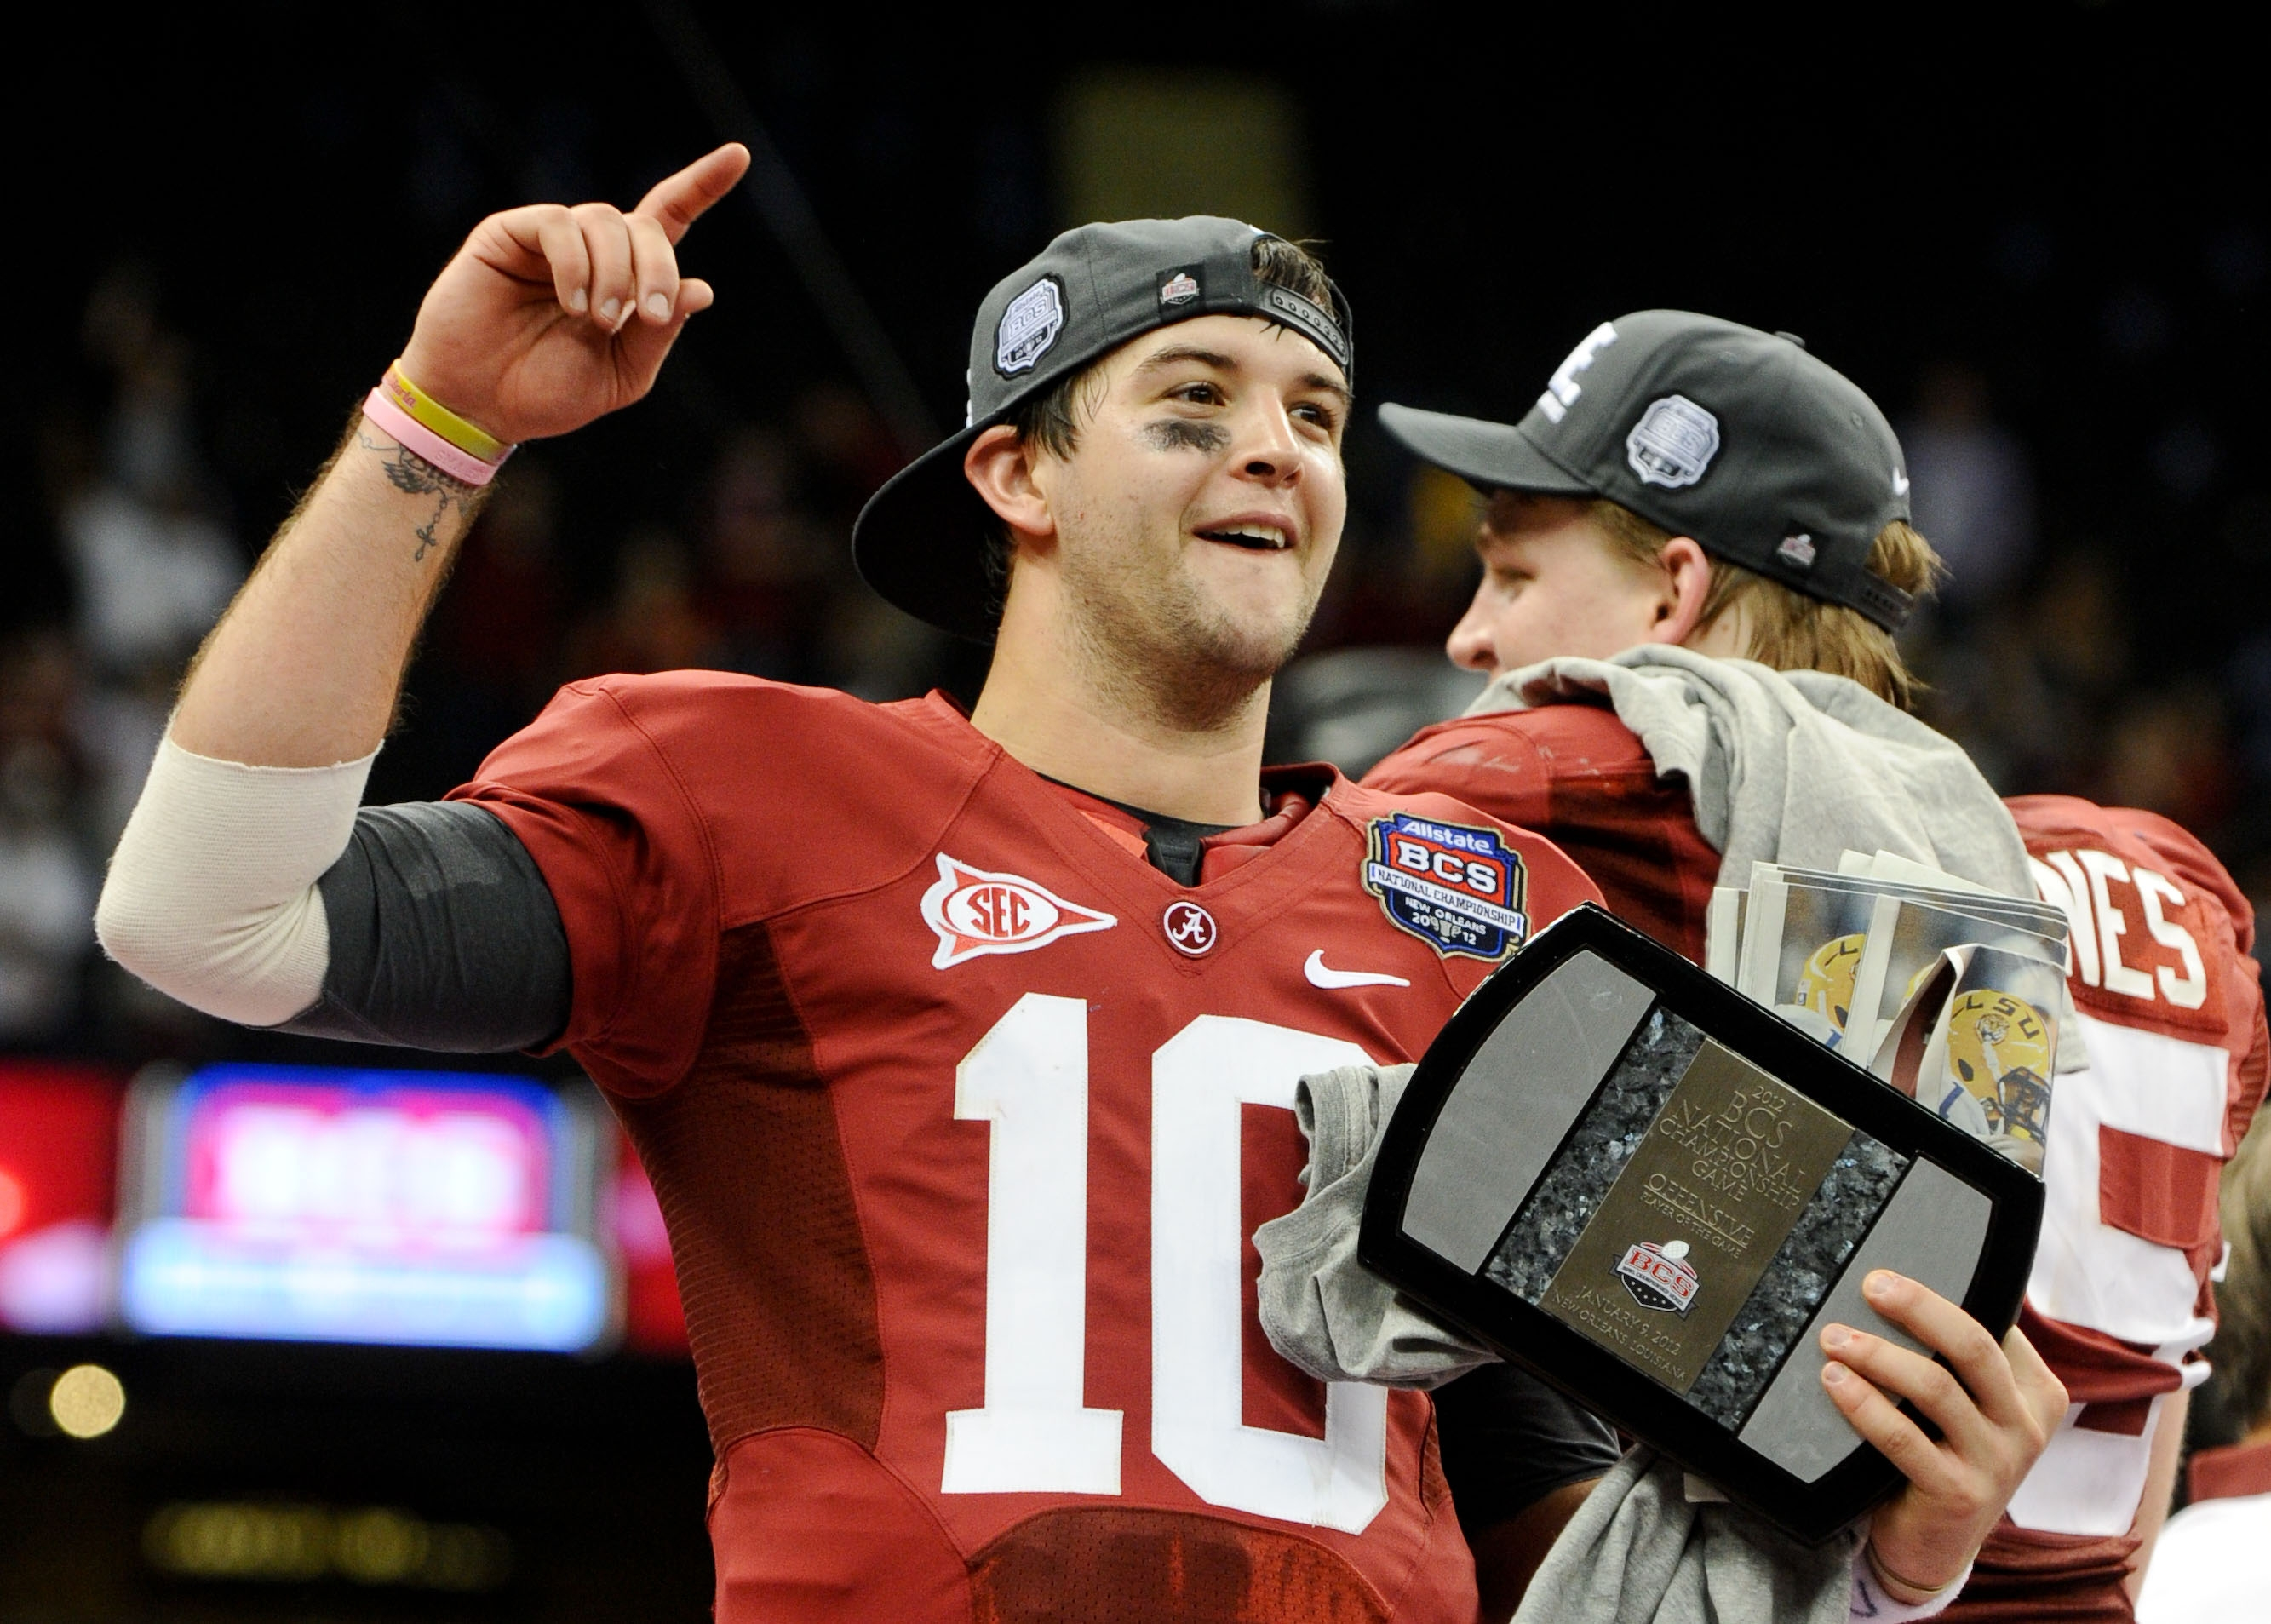 AJ McCarron wins, people